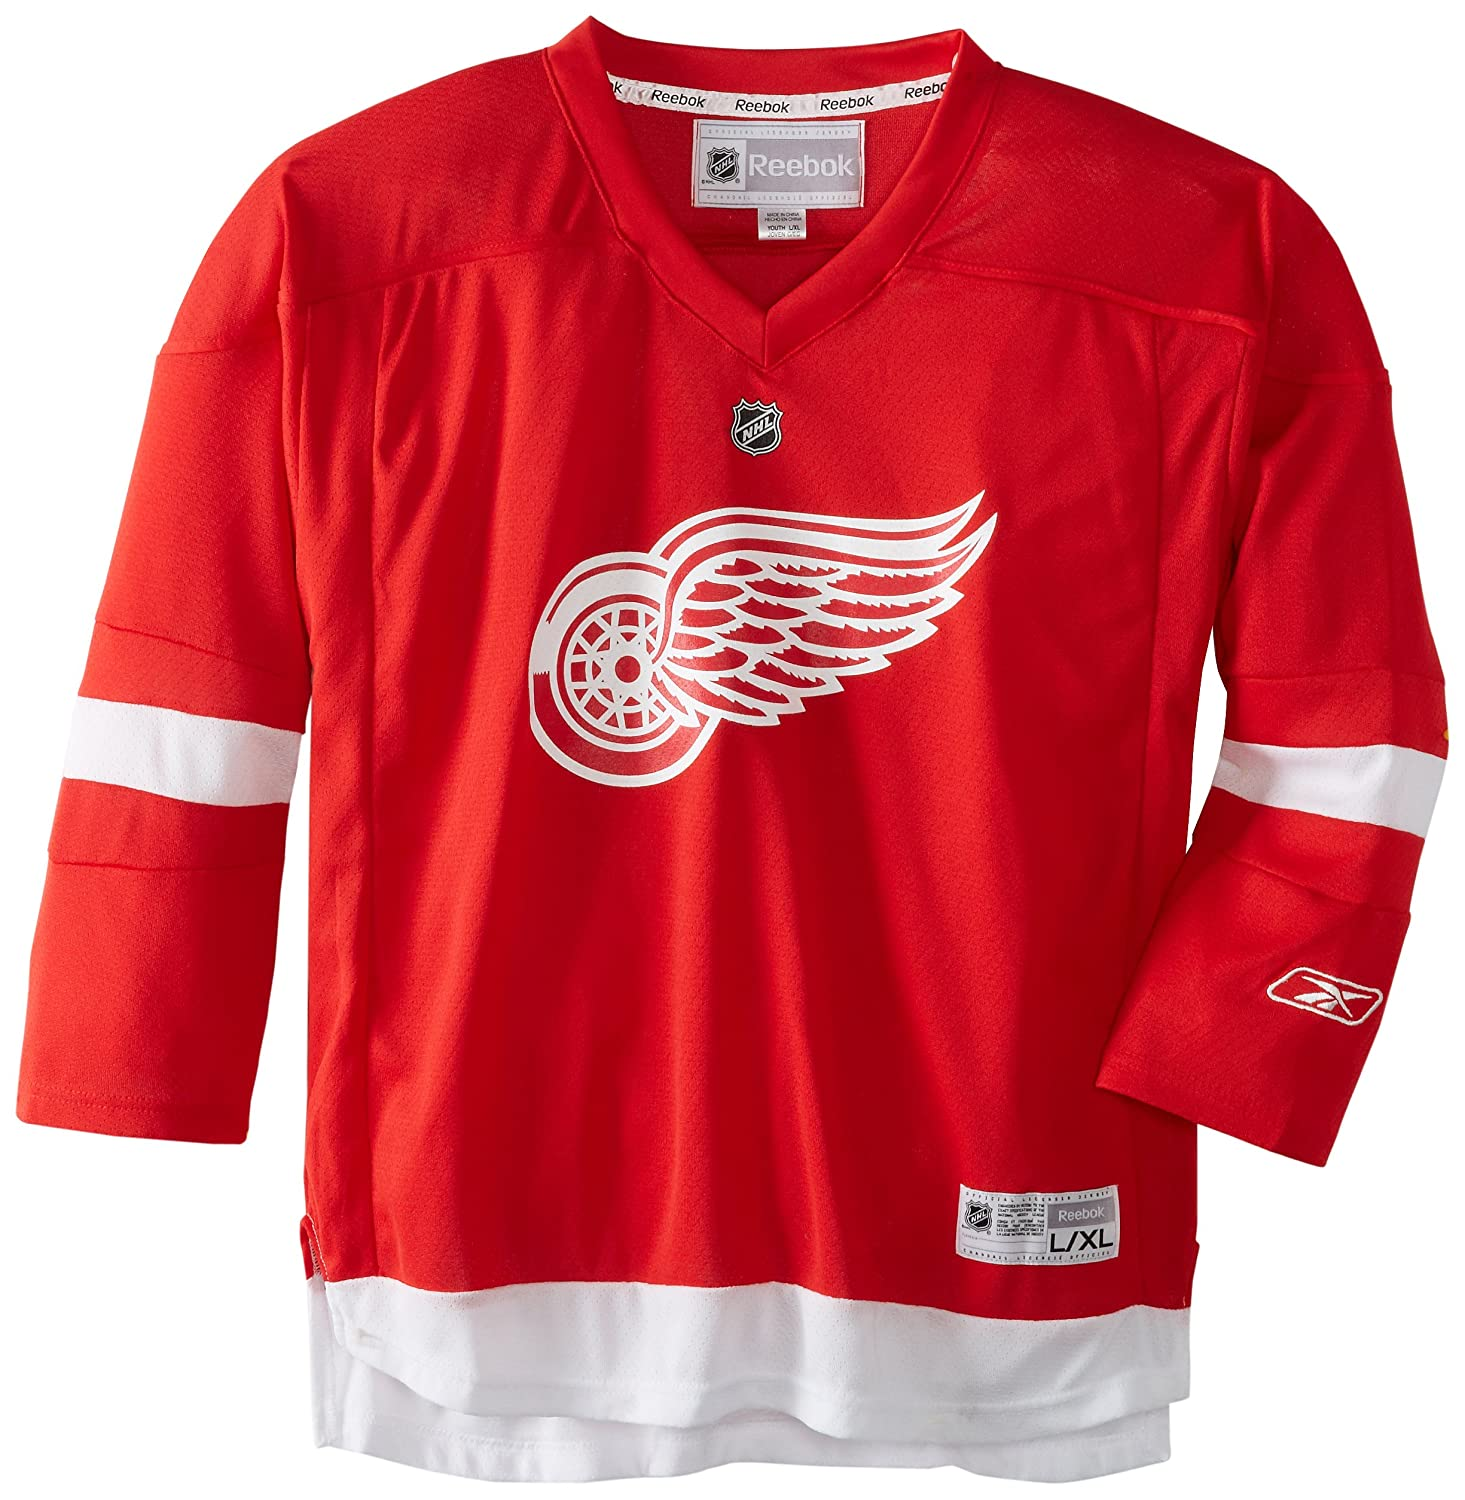 NHL Detroit Red Wings Team Color Replica Jersey Youth Large/X-Large Reebok 58HWB